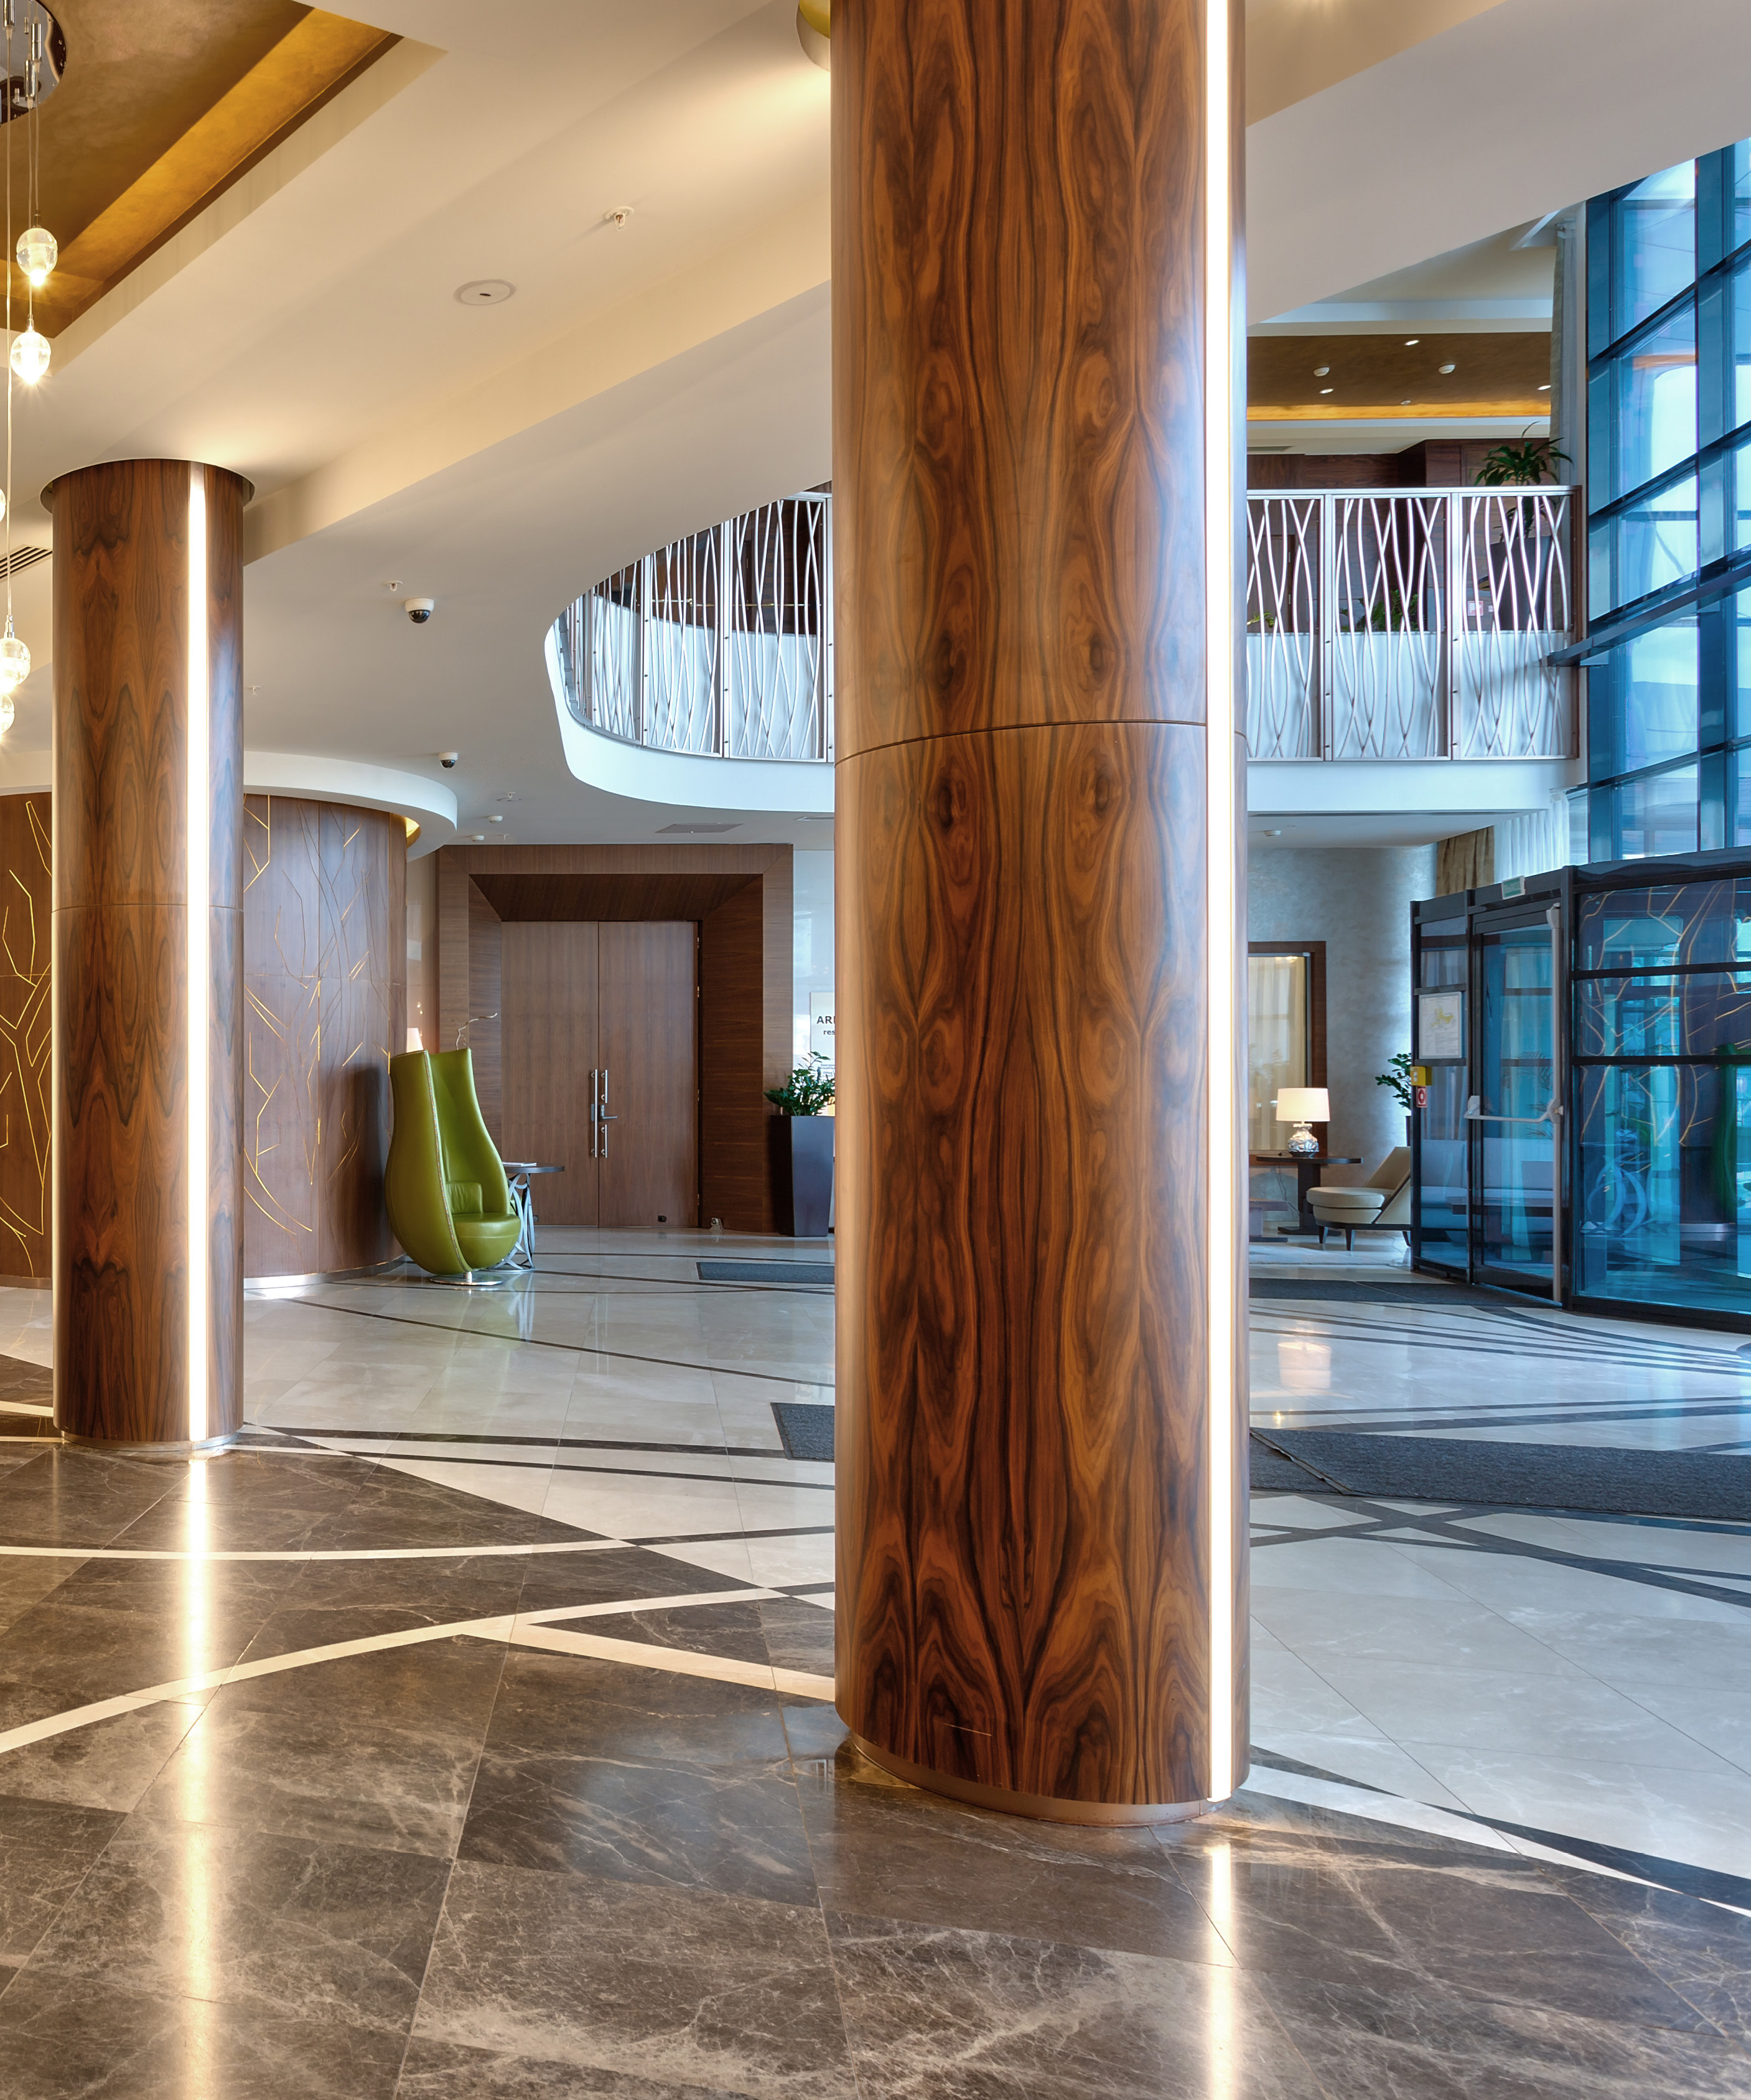 arketipo design enriches the interiors of hotels with marble   natura